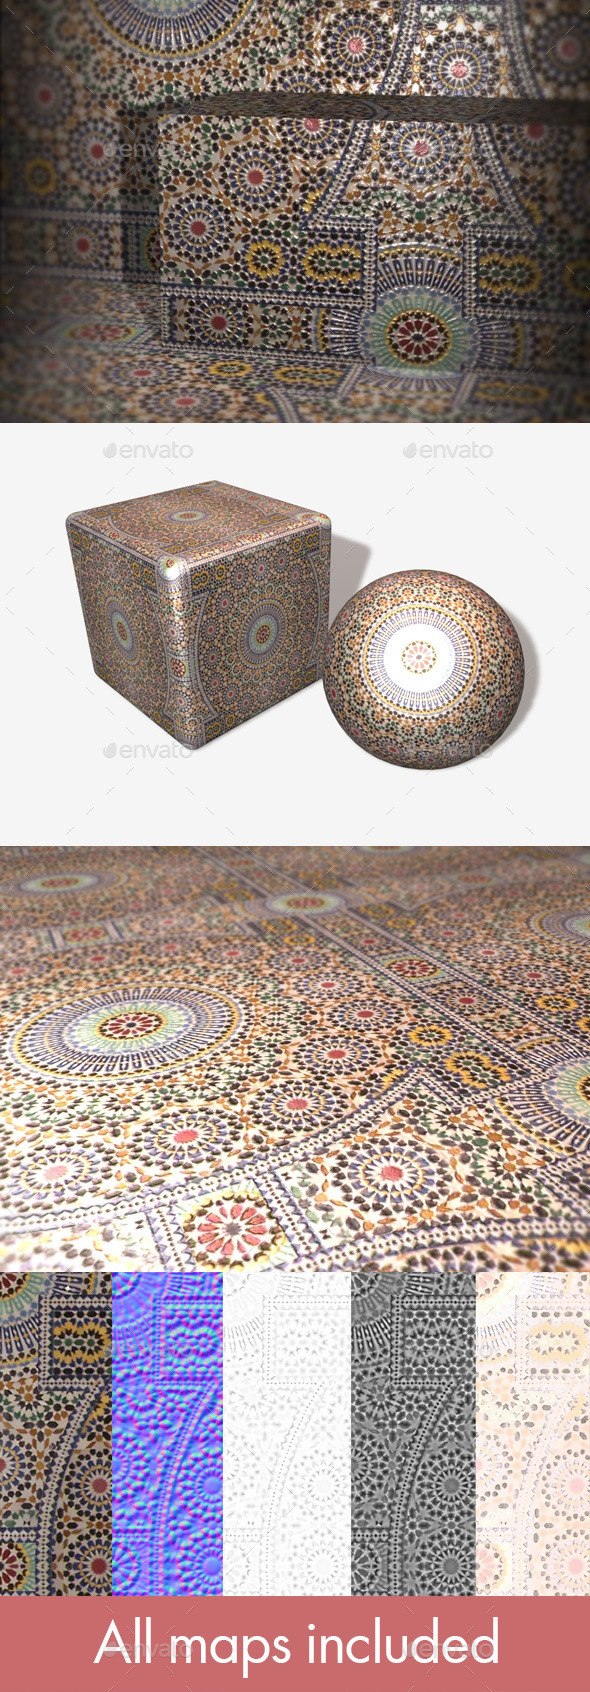 Moroccan Tiles Seamless Texture - 3DOcean Item for Sale